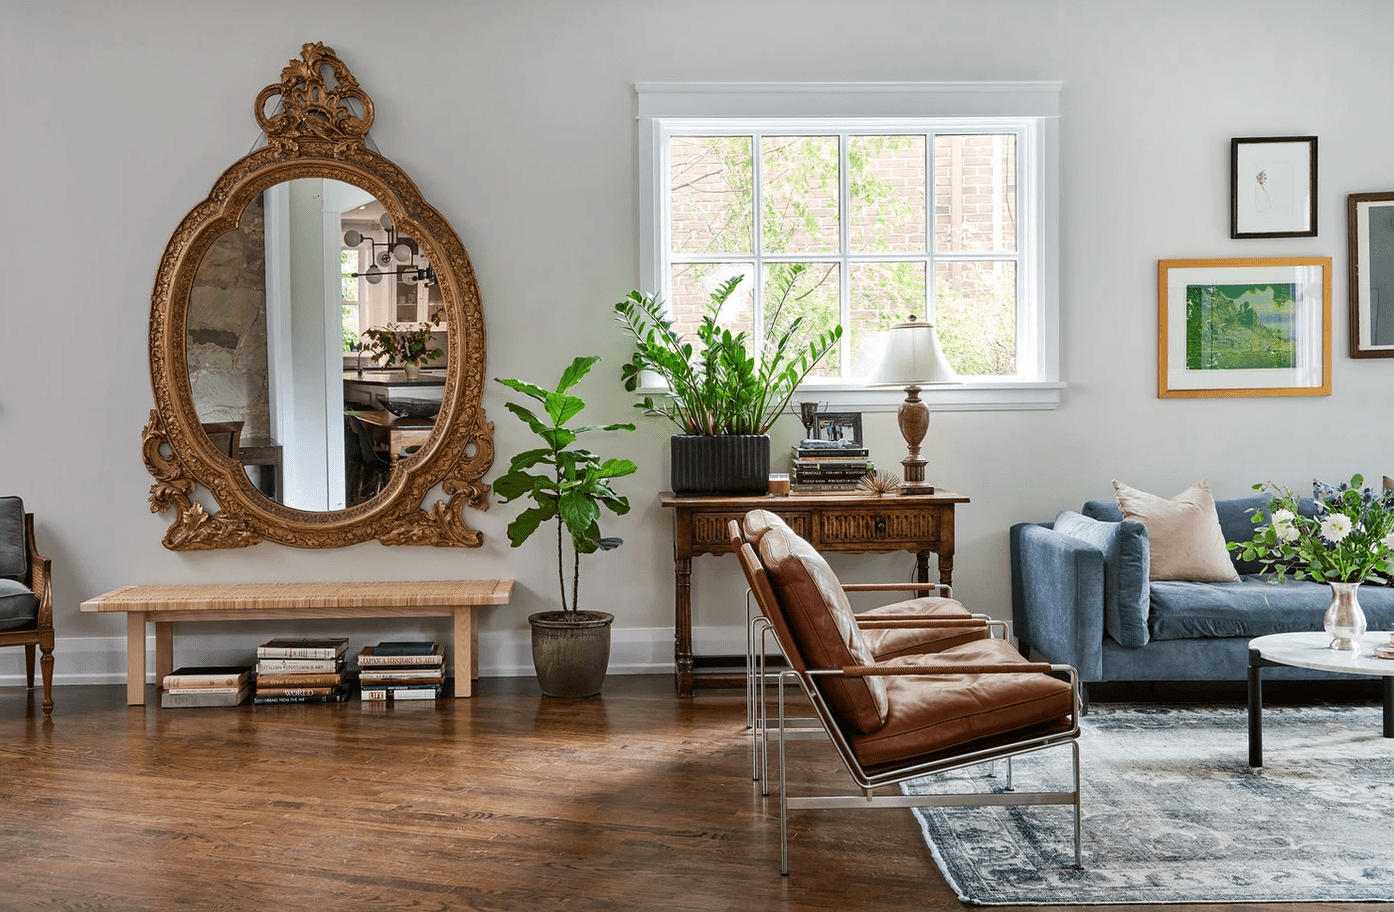 Living room with ornate mirror